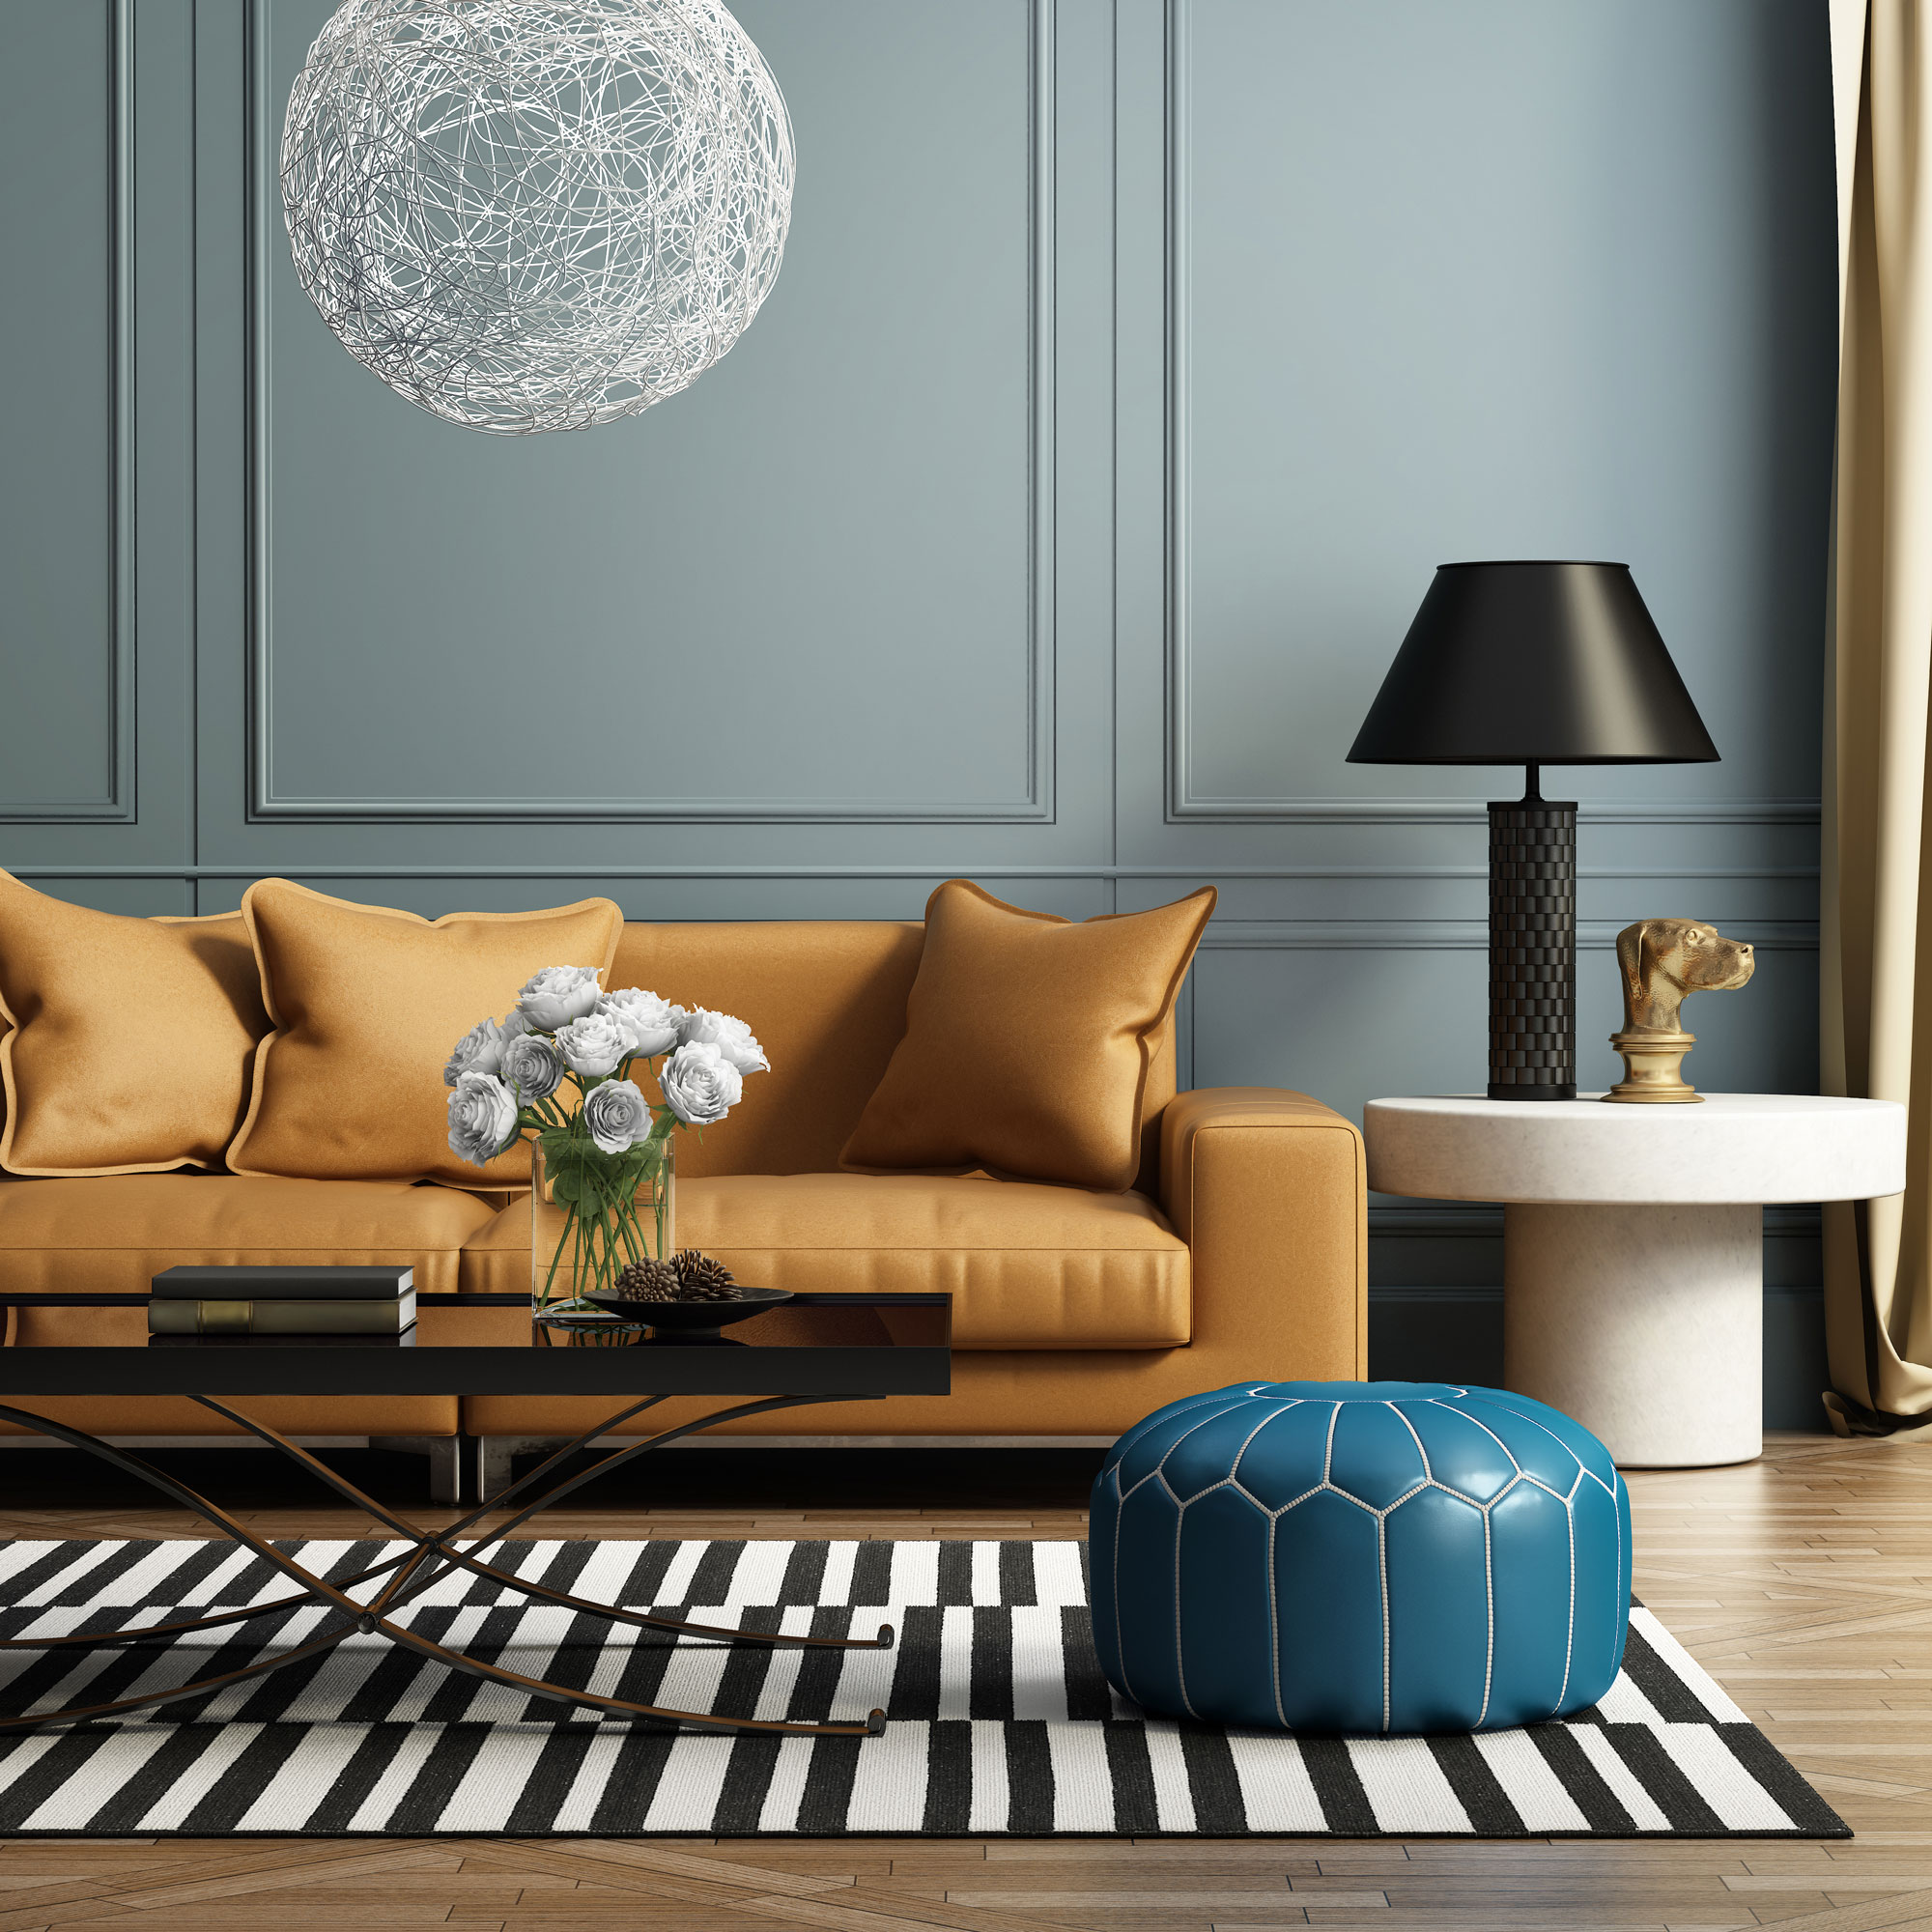 5 Things Decorators Never Spend Money On(and 3 Things They Splurge On)